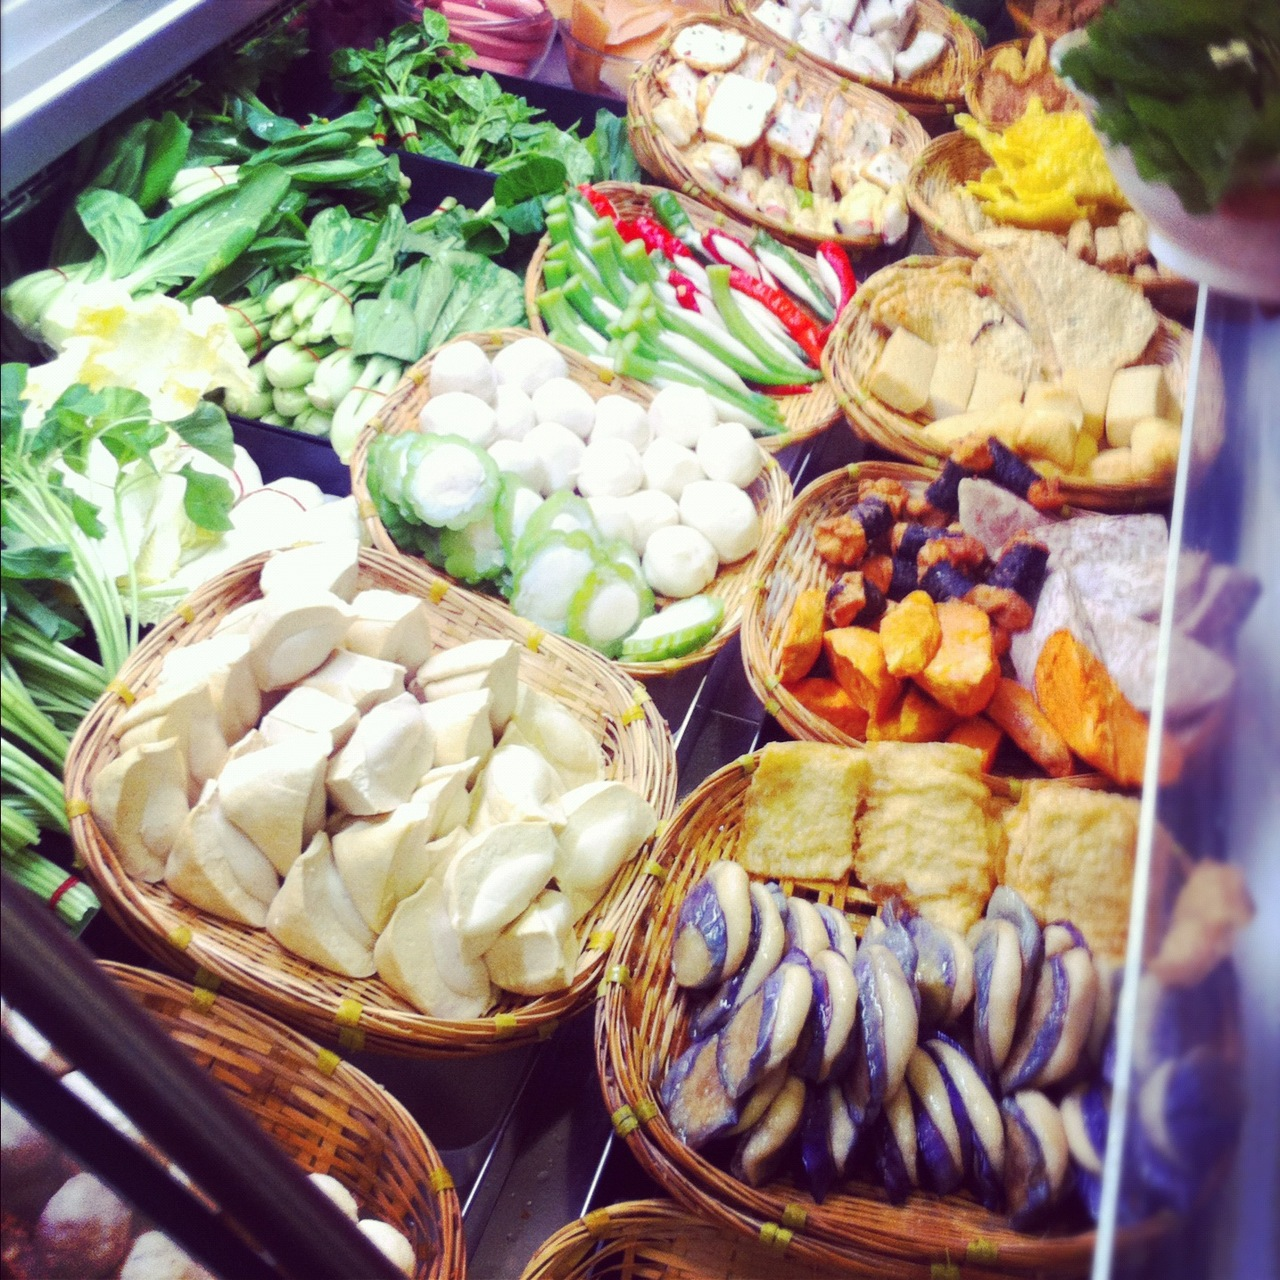 yong tau foo stall display various items vegetables meat colourful singapore malaysia traditional street food hawker